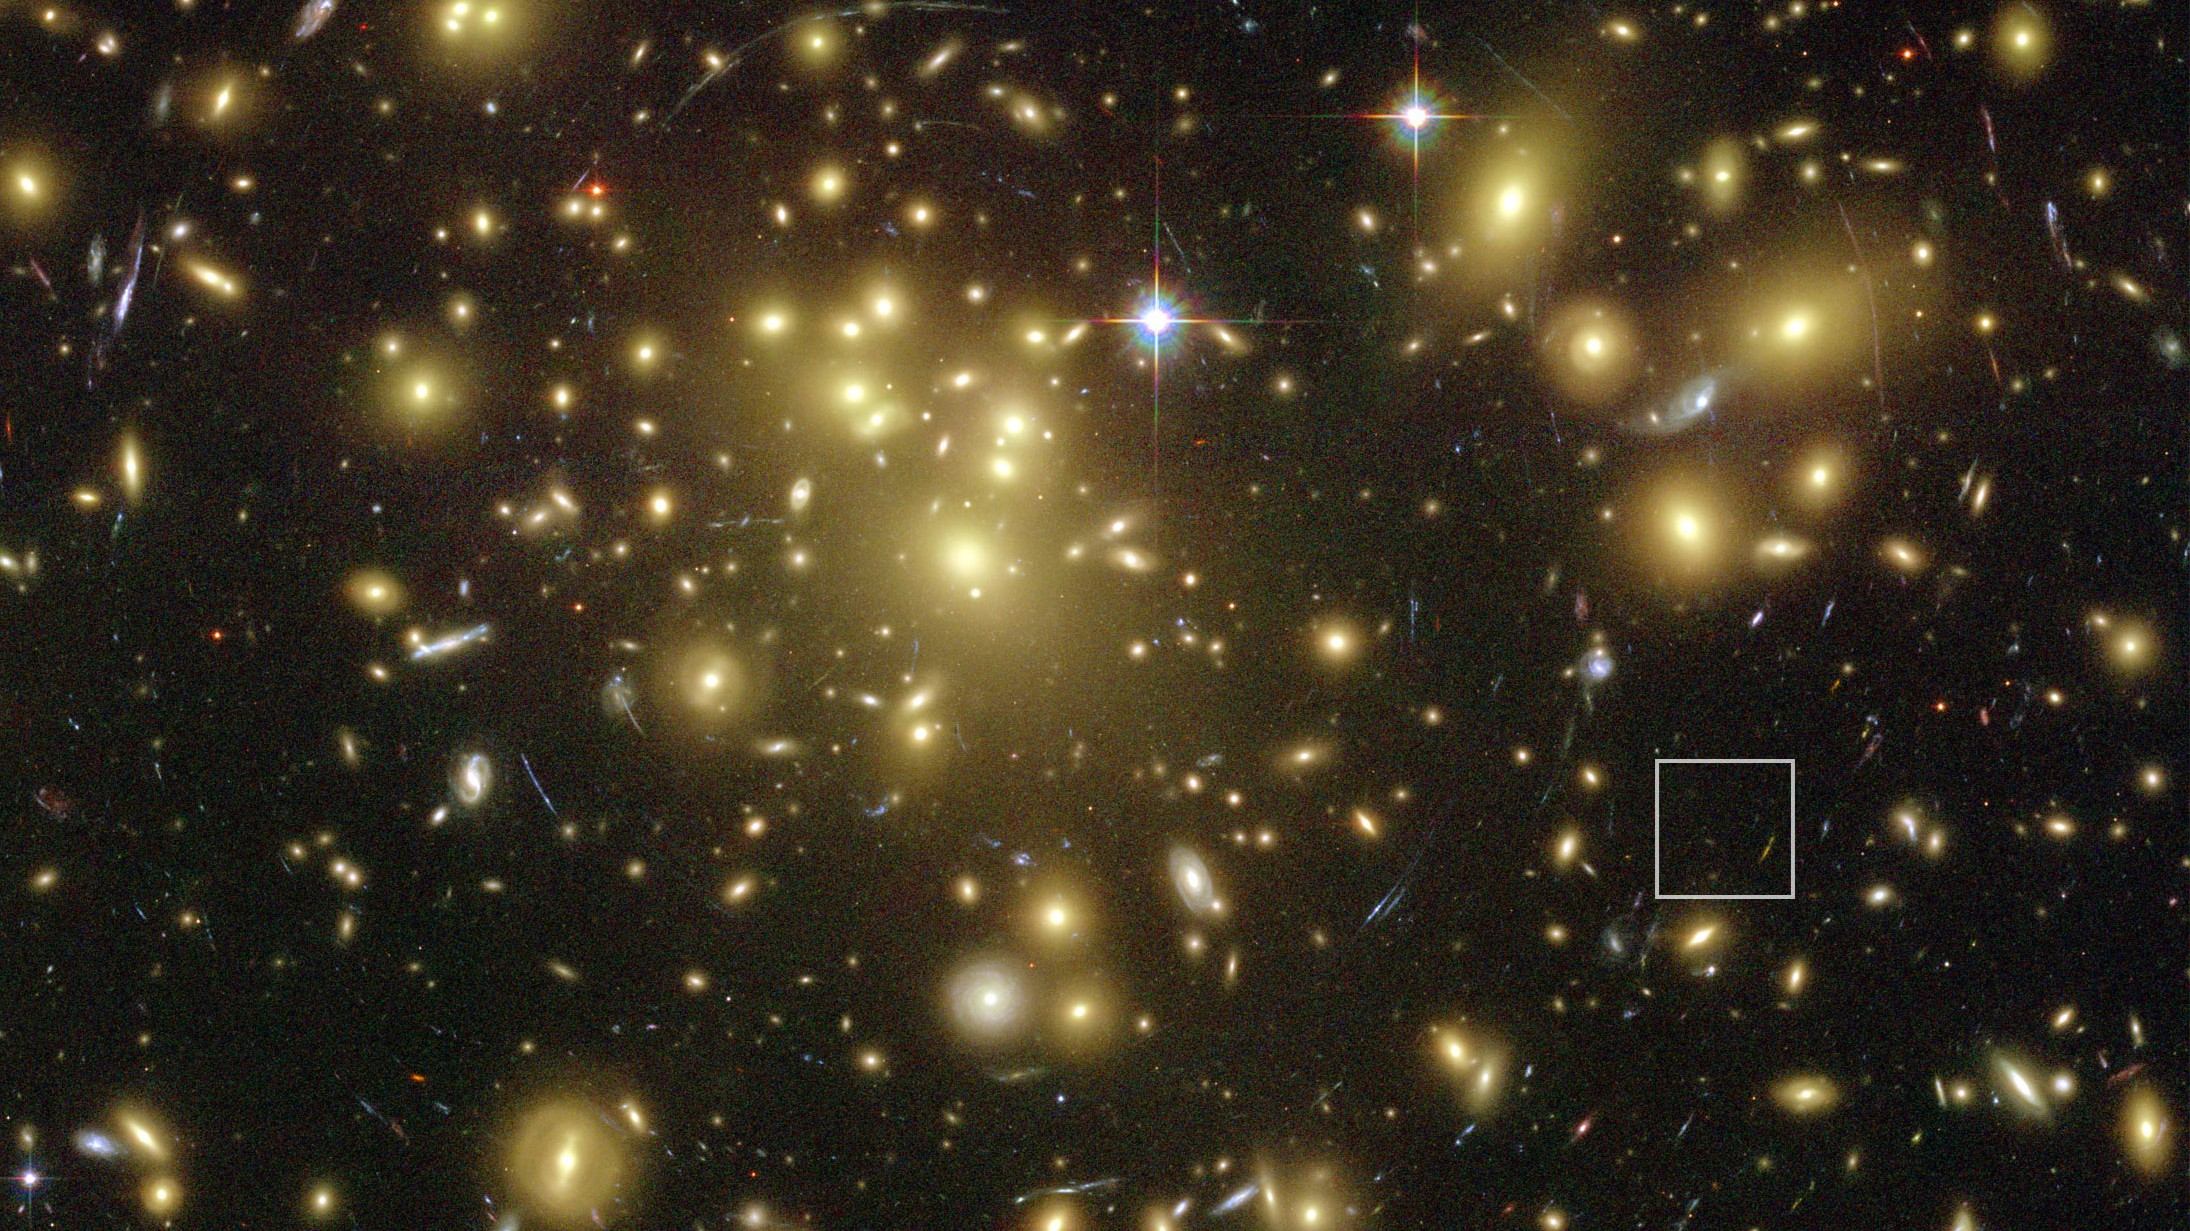 The Puzzling Galaxy at the Edge of Time and Space